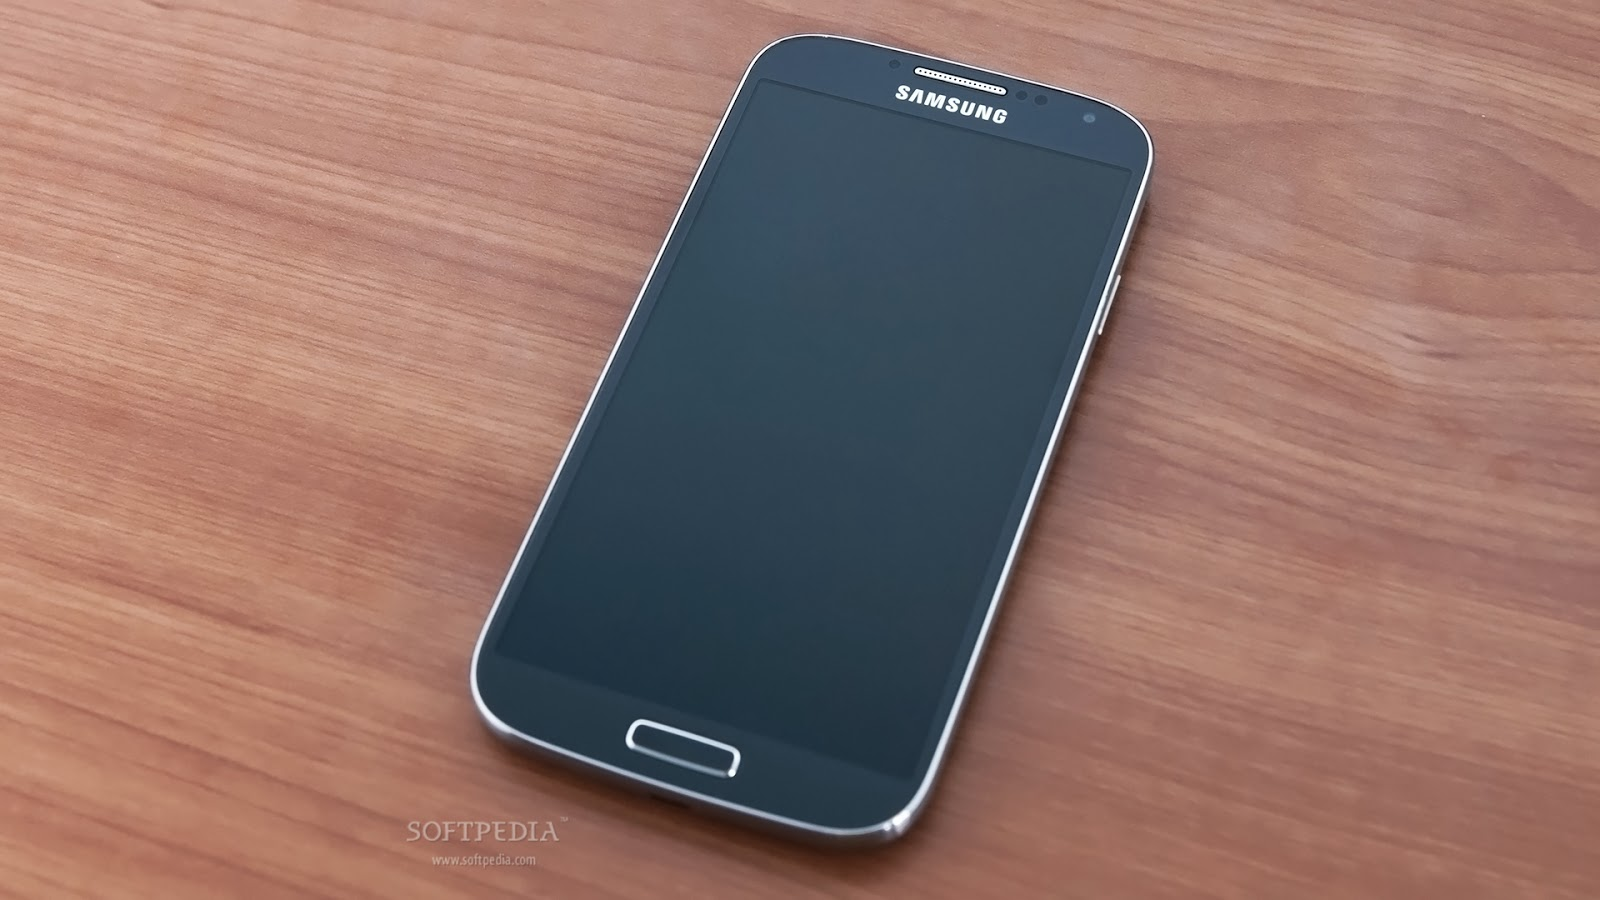 Verbazingwekkend PC Games And Softwares: Samsung Galaxy S4 GT-i9505 4.4.2 HZ-56